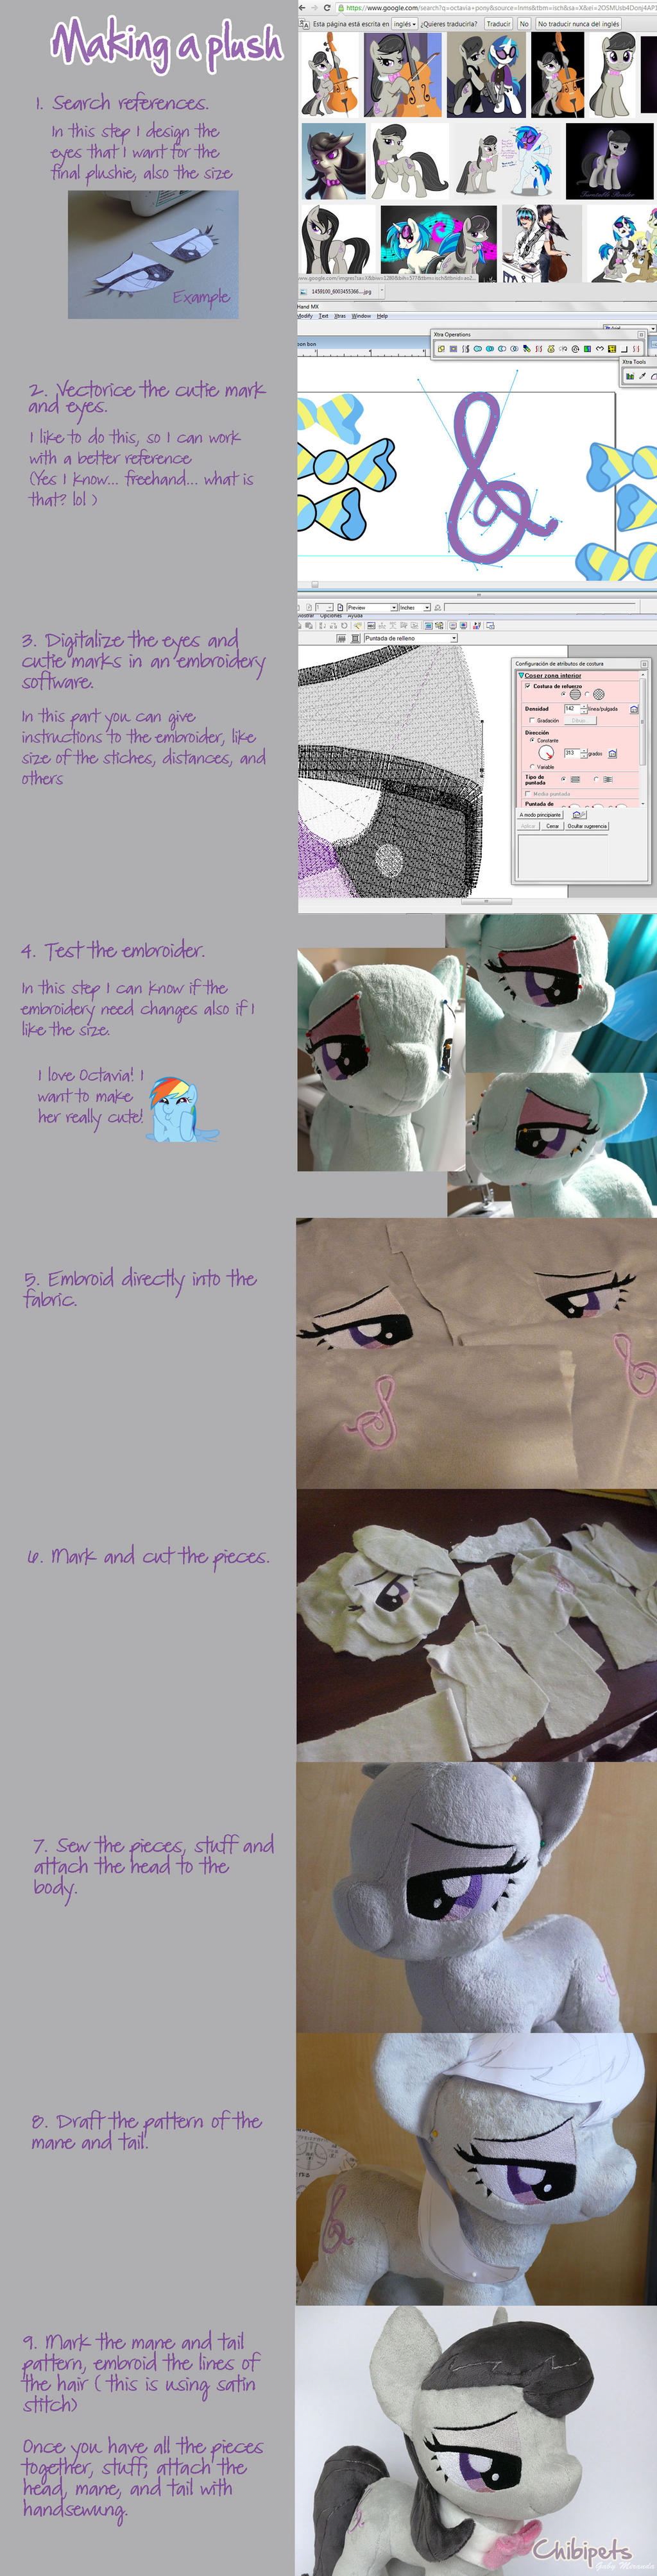 Making a Plush ... guide reference by Chibi-pets